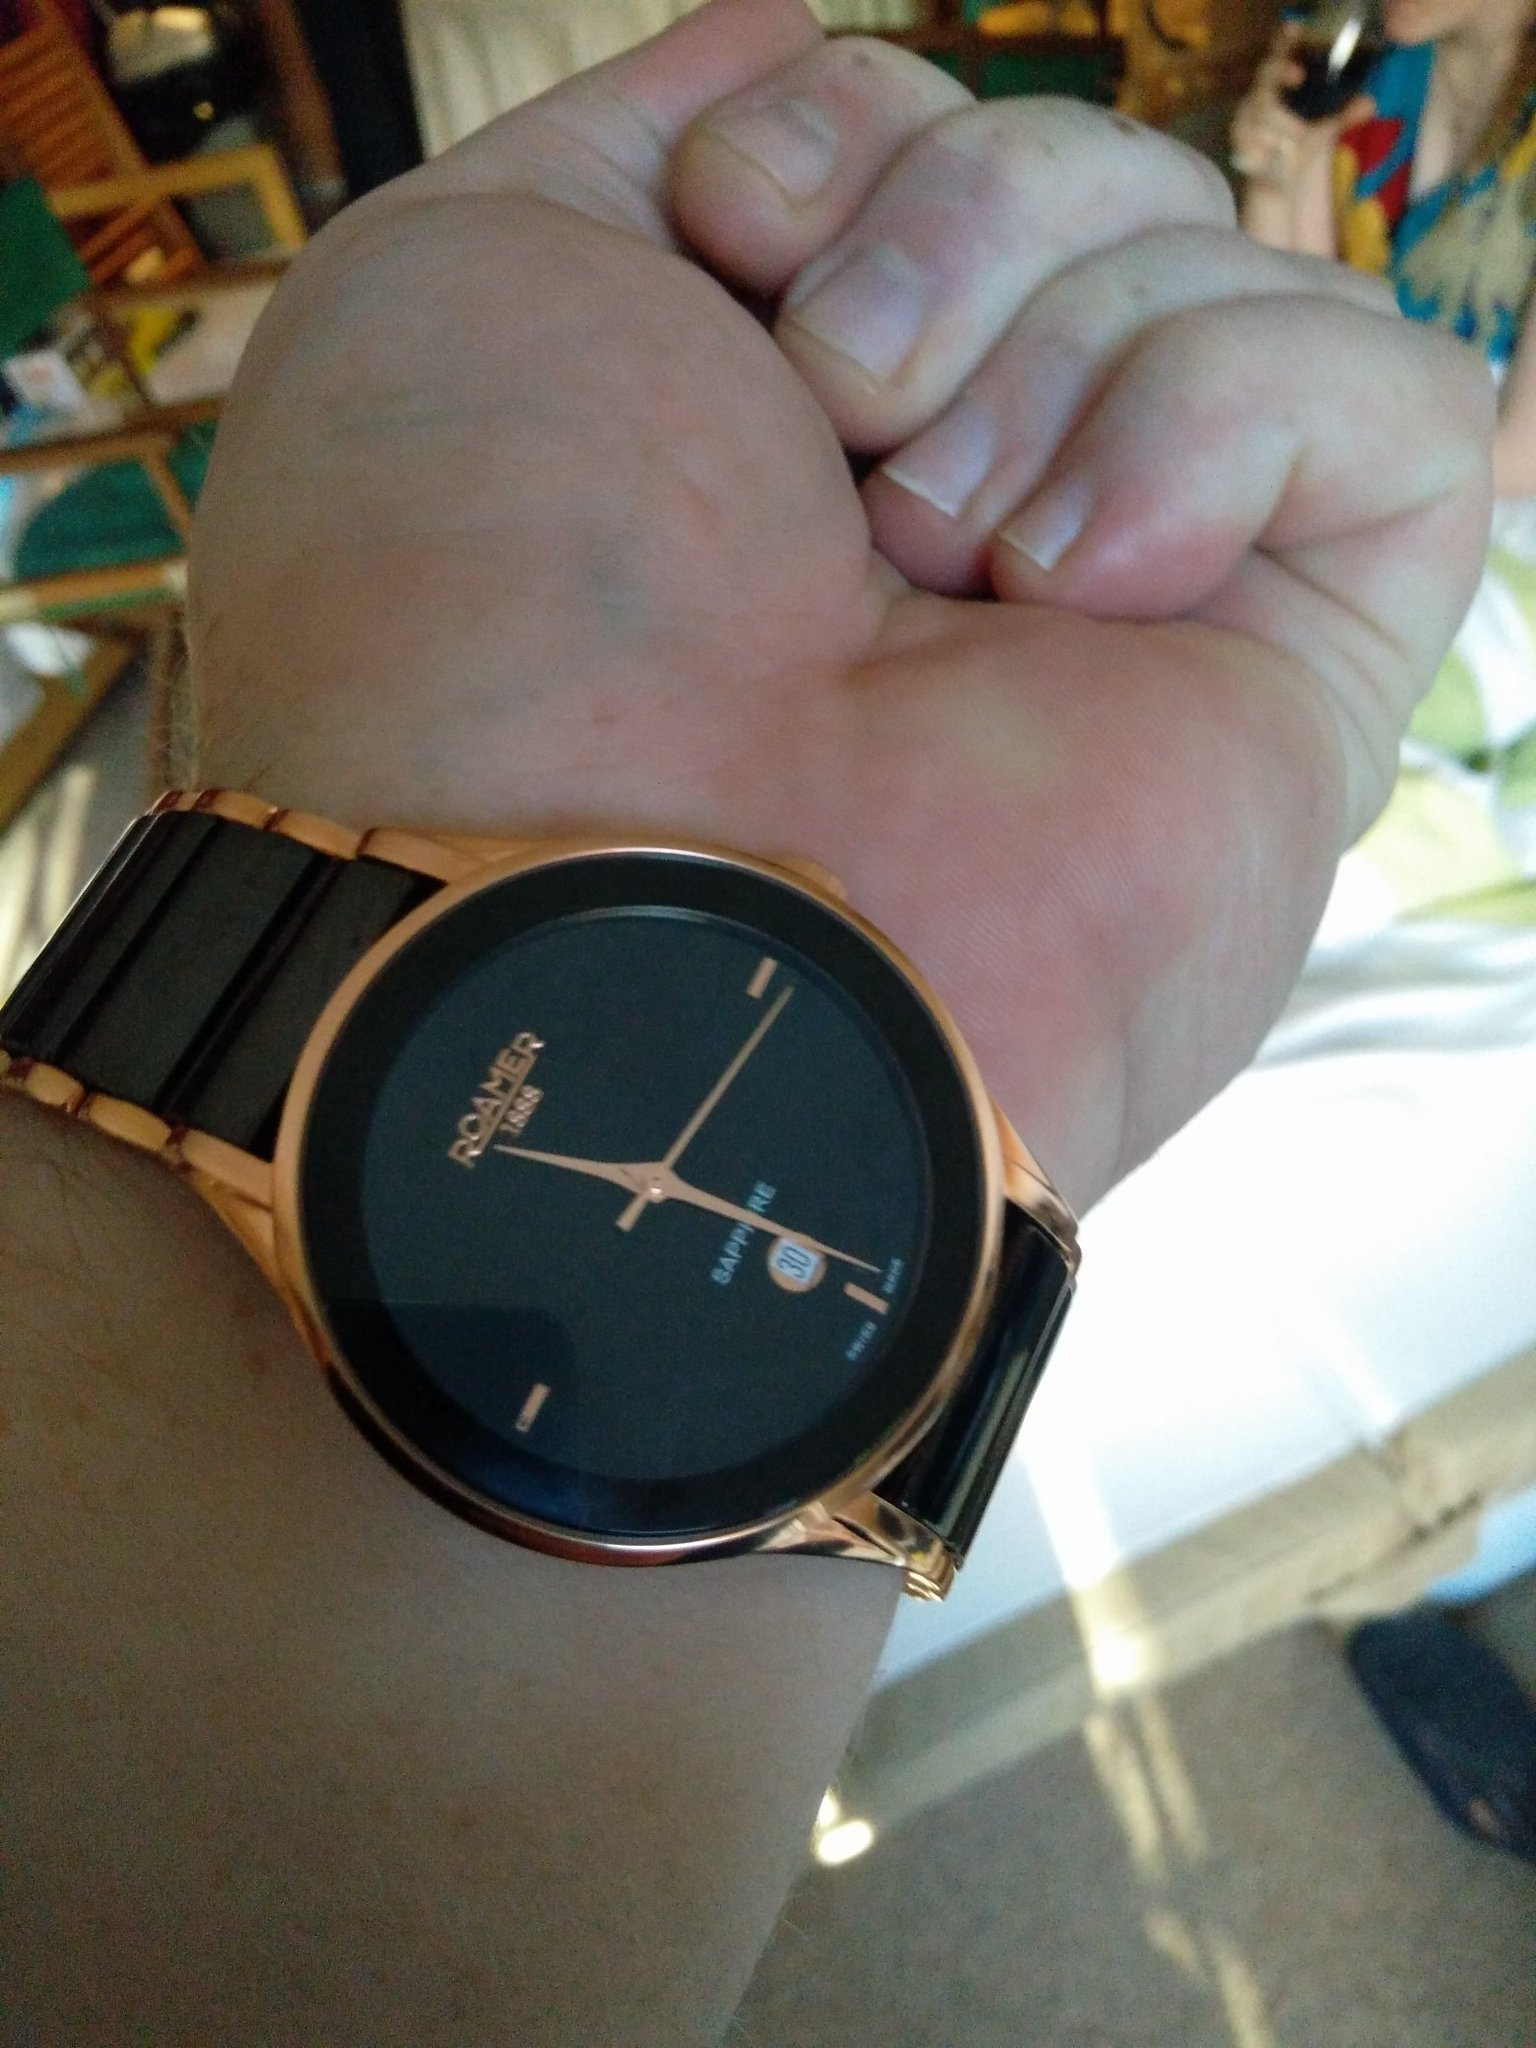 my gorgeous new watch showing the time